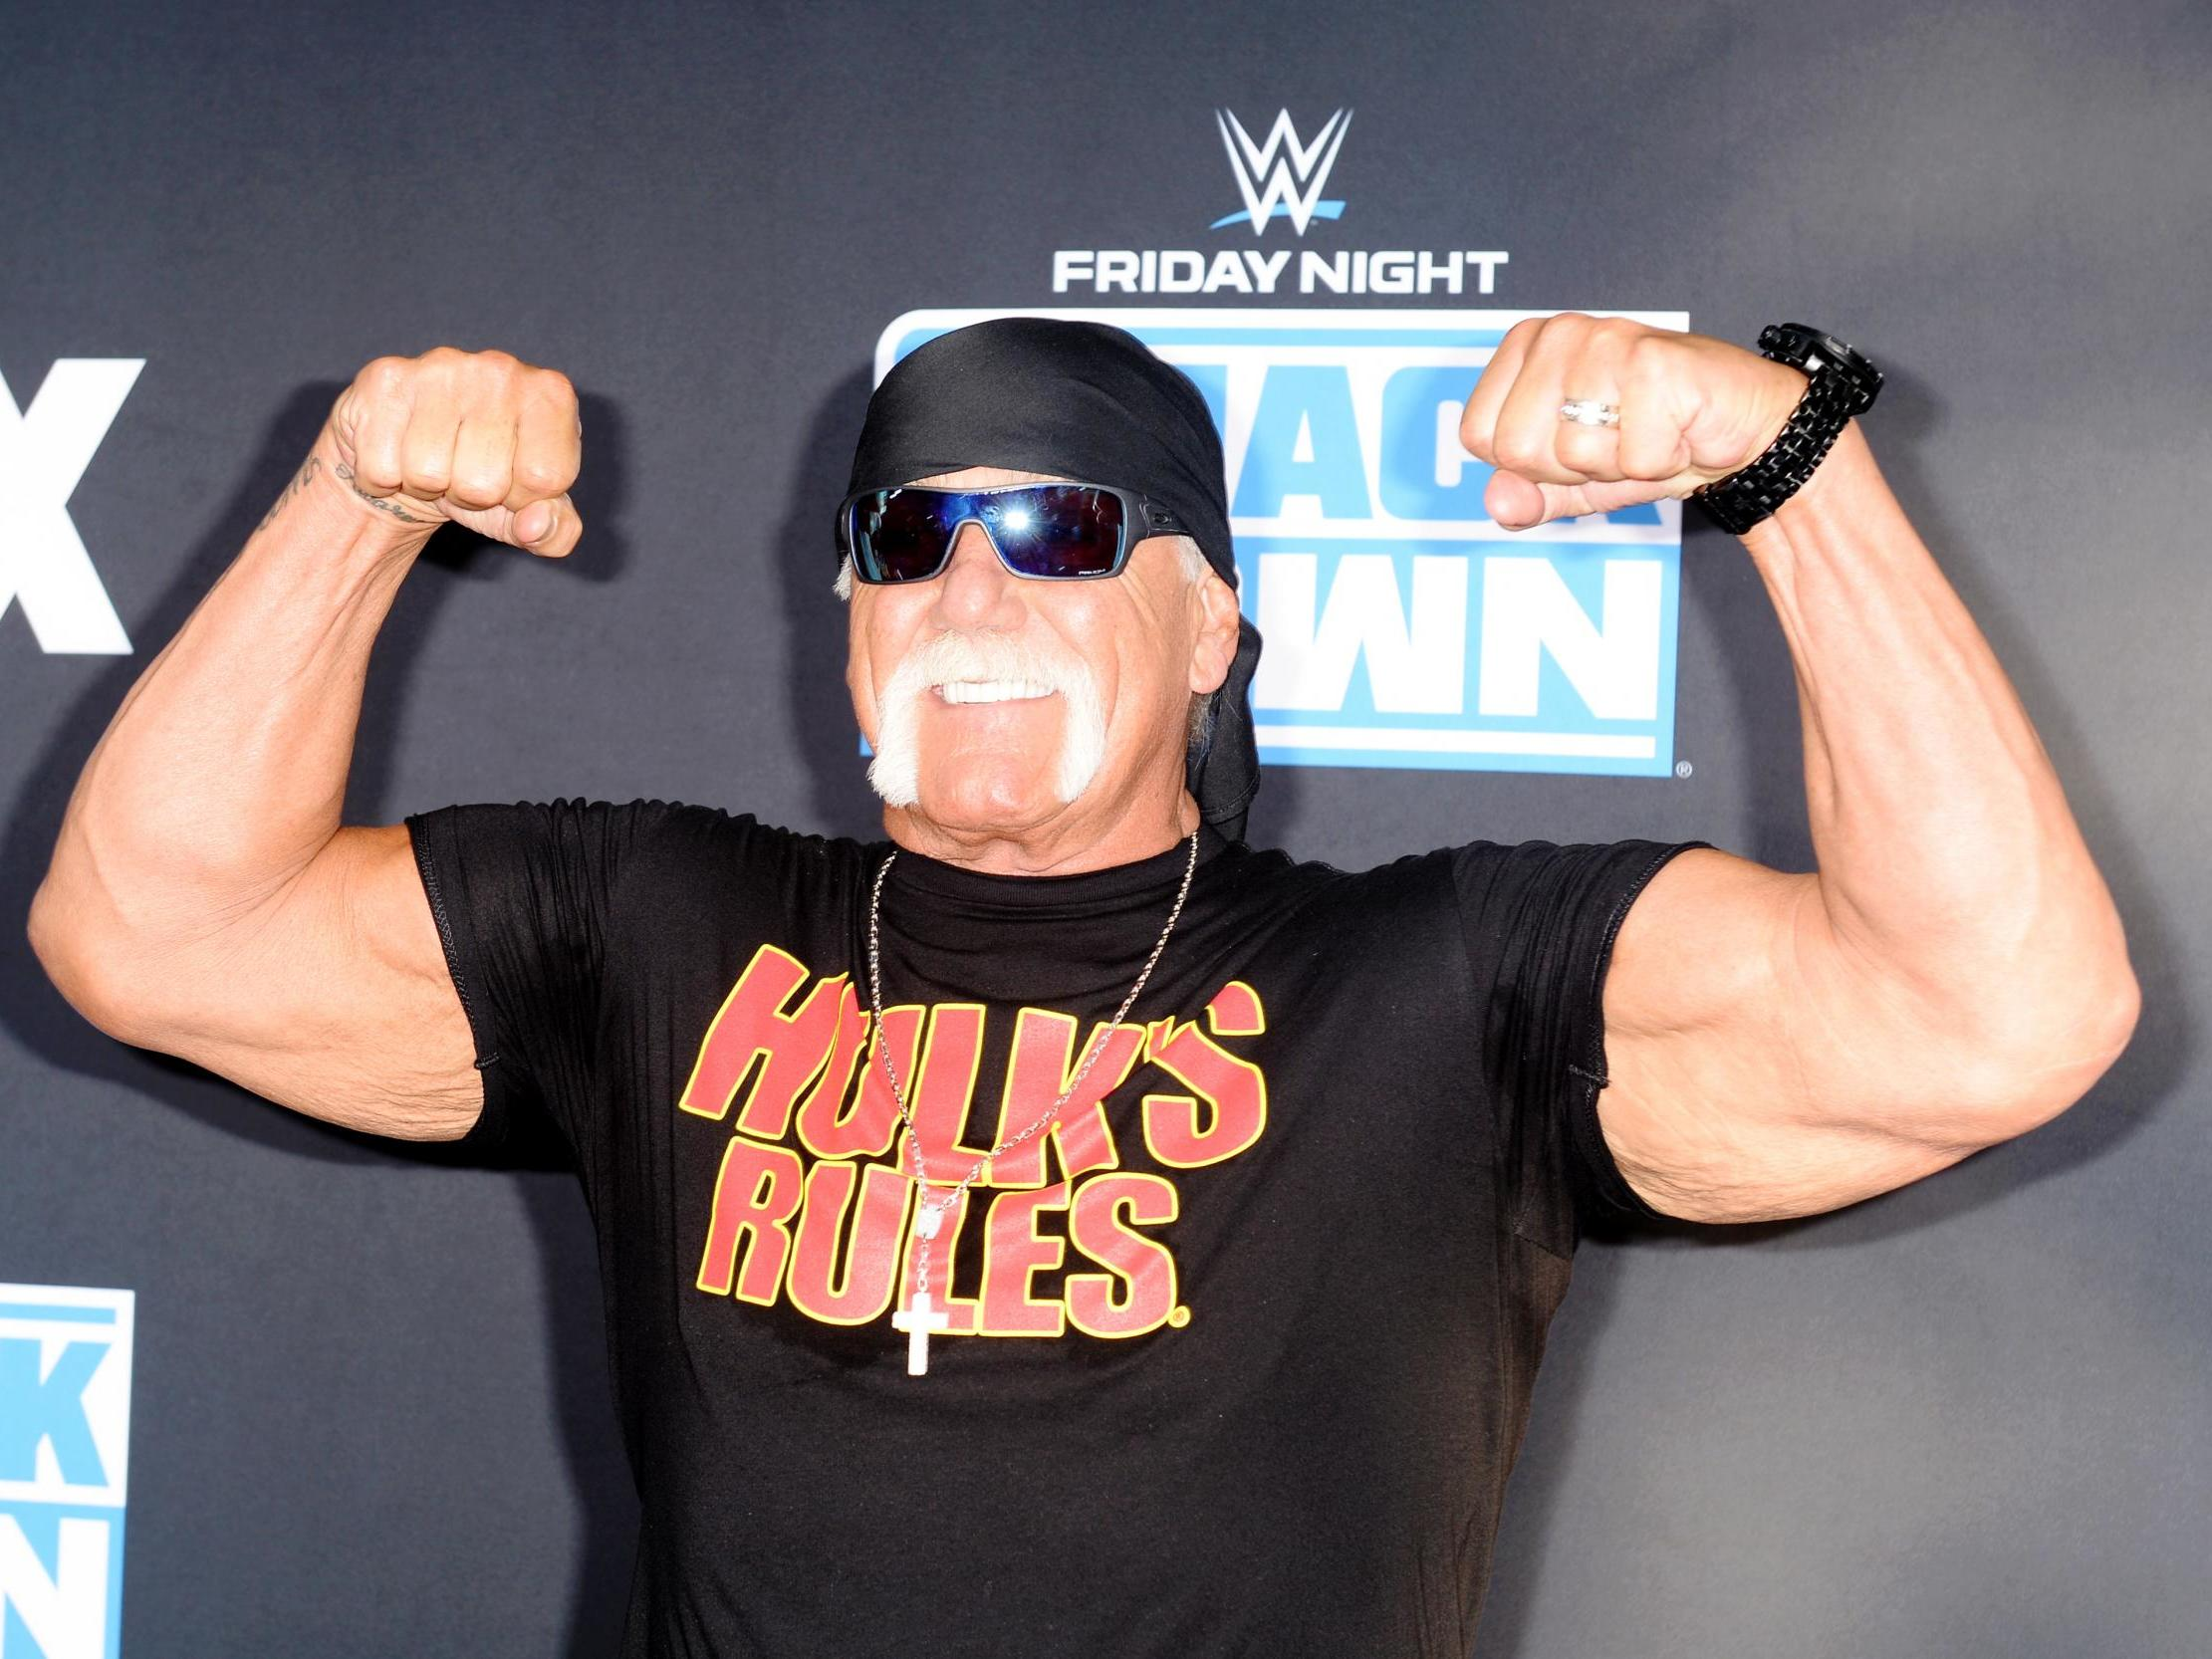 Hulk Hogan and ex-wife banned from wrestling events over 'afro Americans' tweet